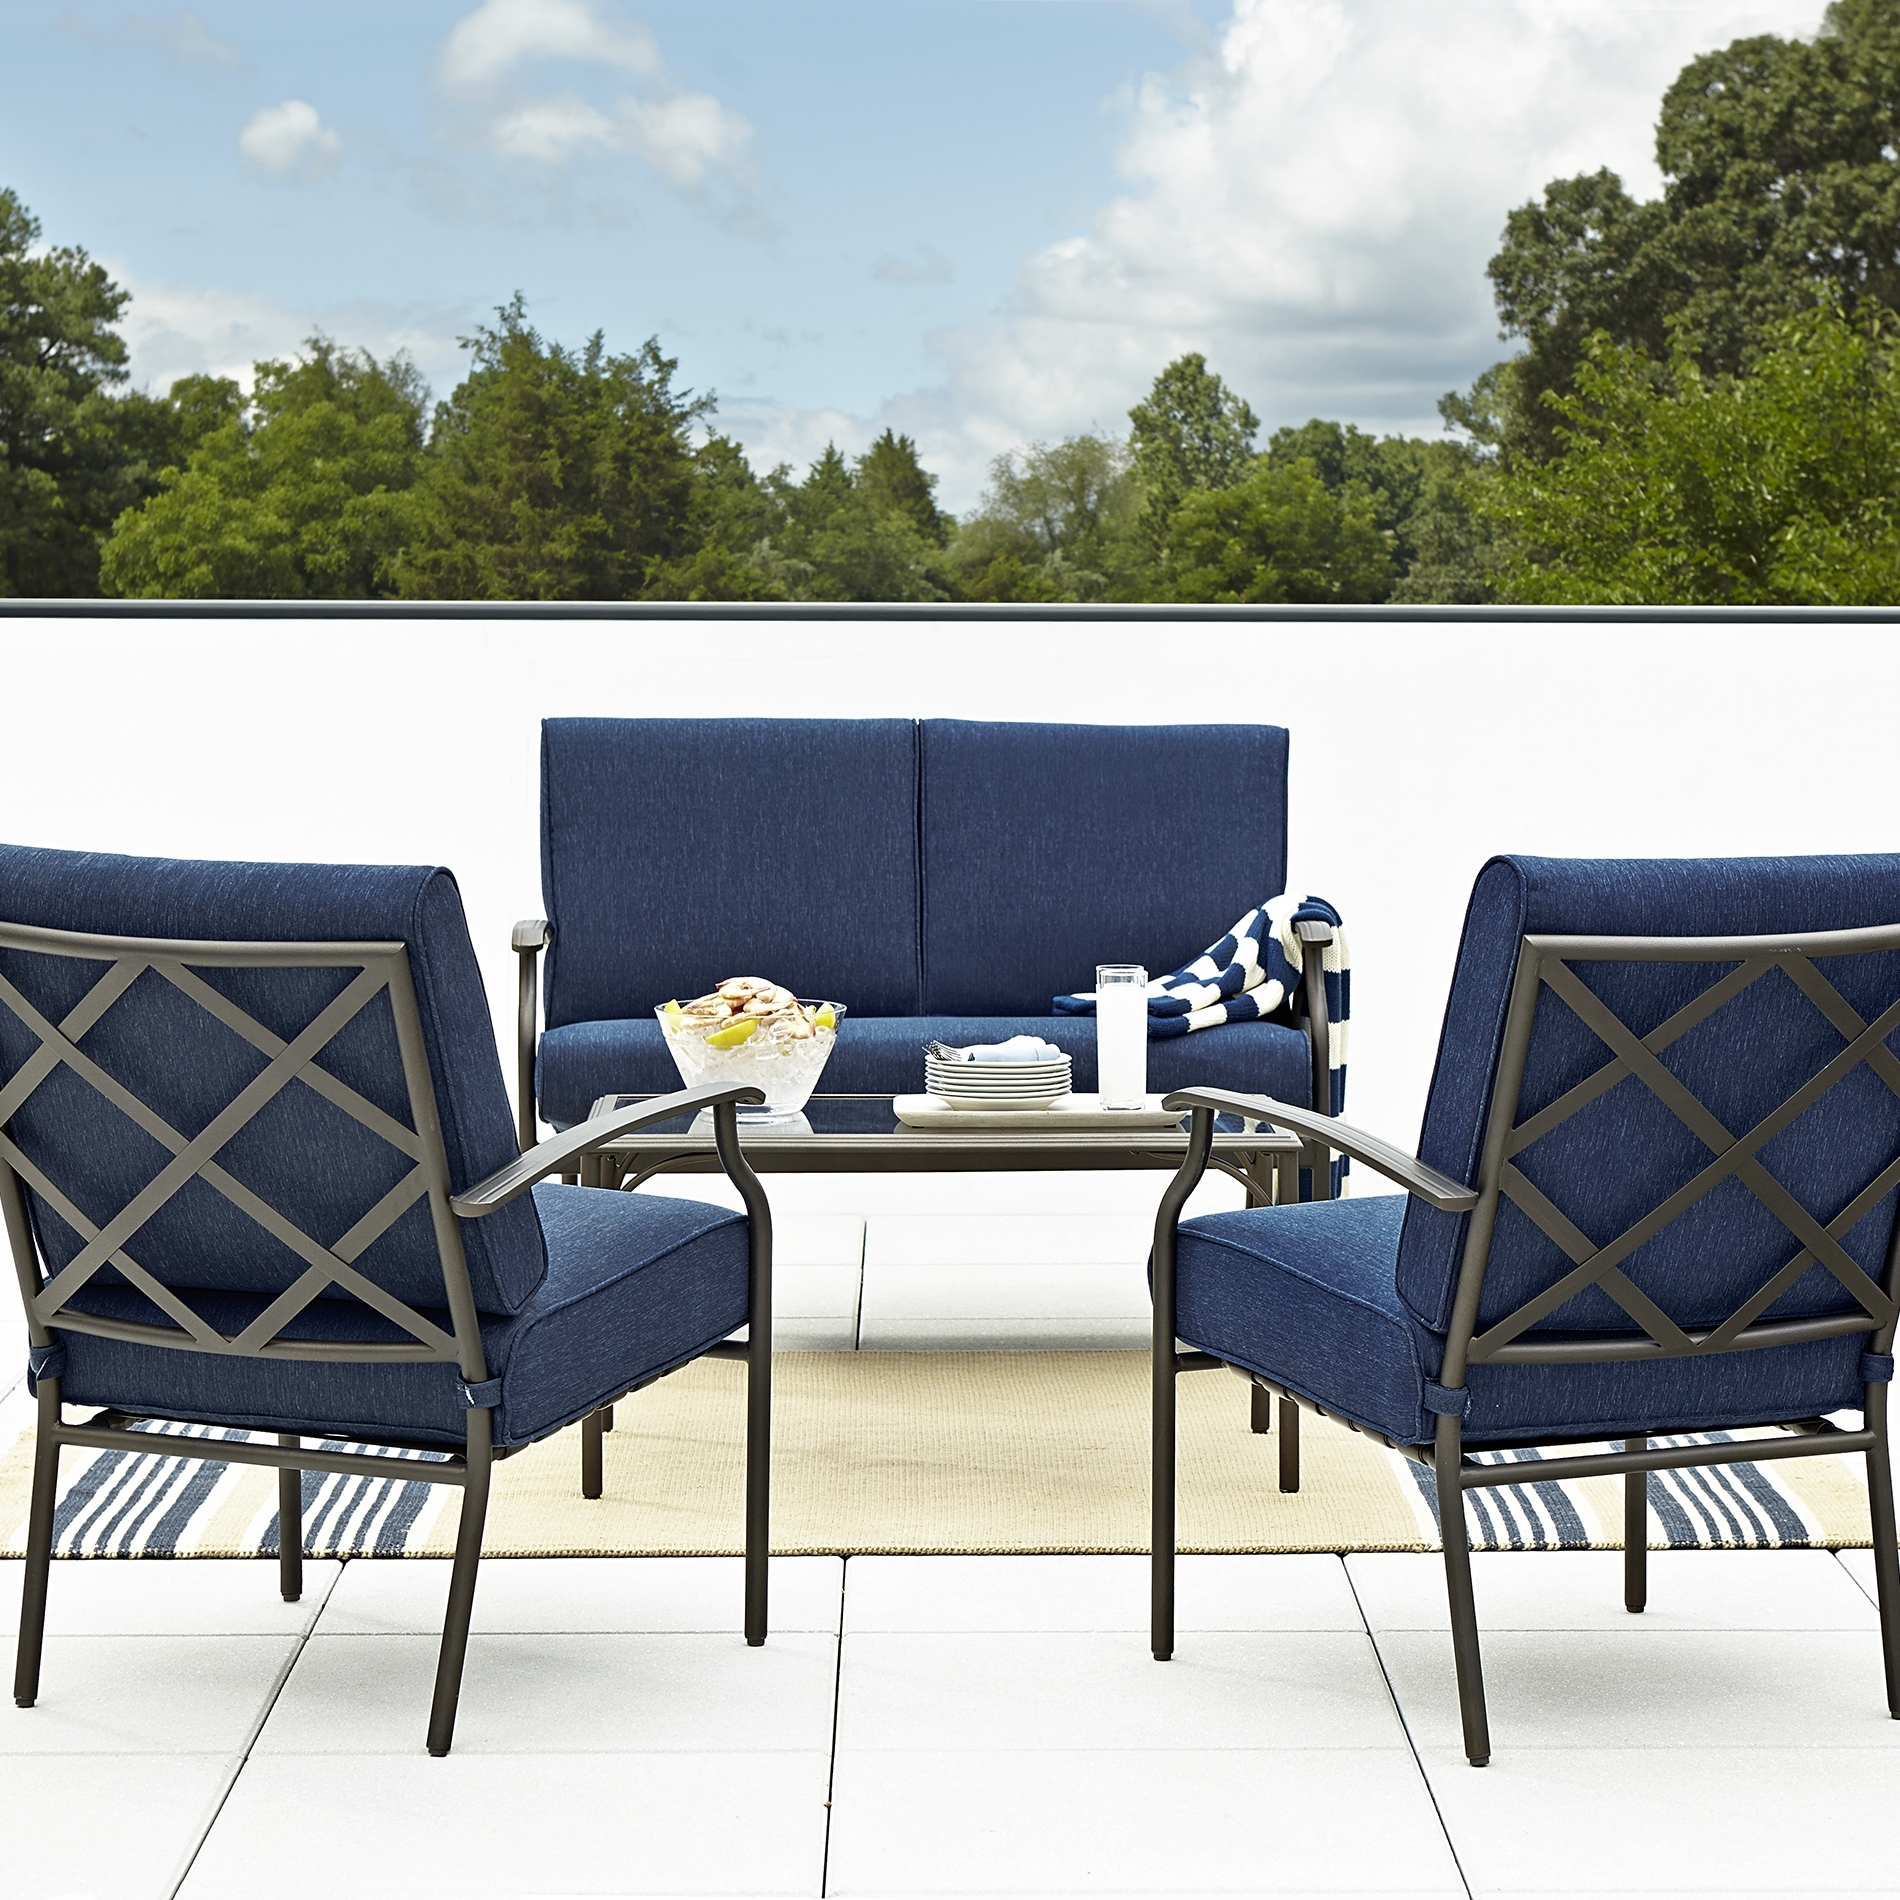 Famous Patio Conversation Sets At Sears Pertaining To Patio: Home Depot Furniture (View 2 of 15)